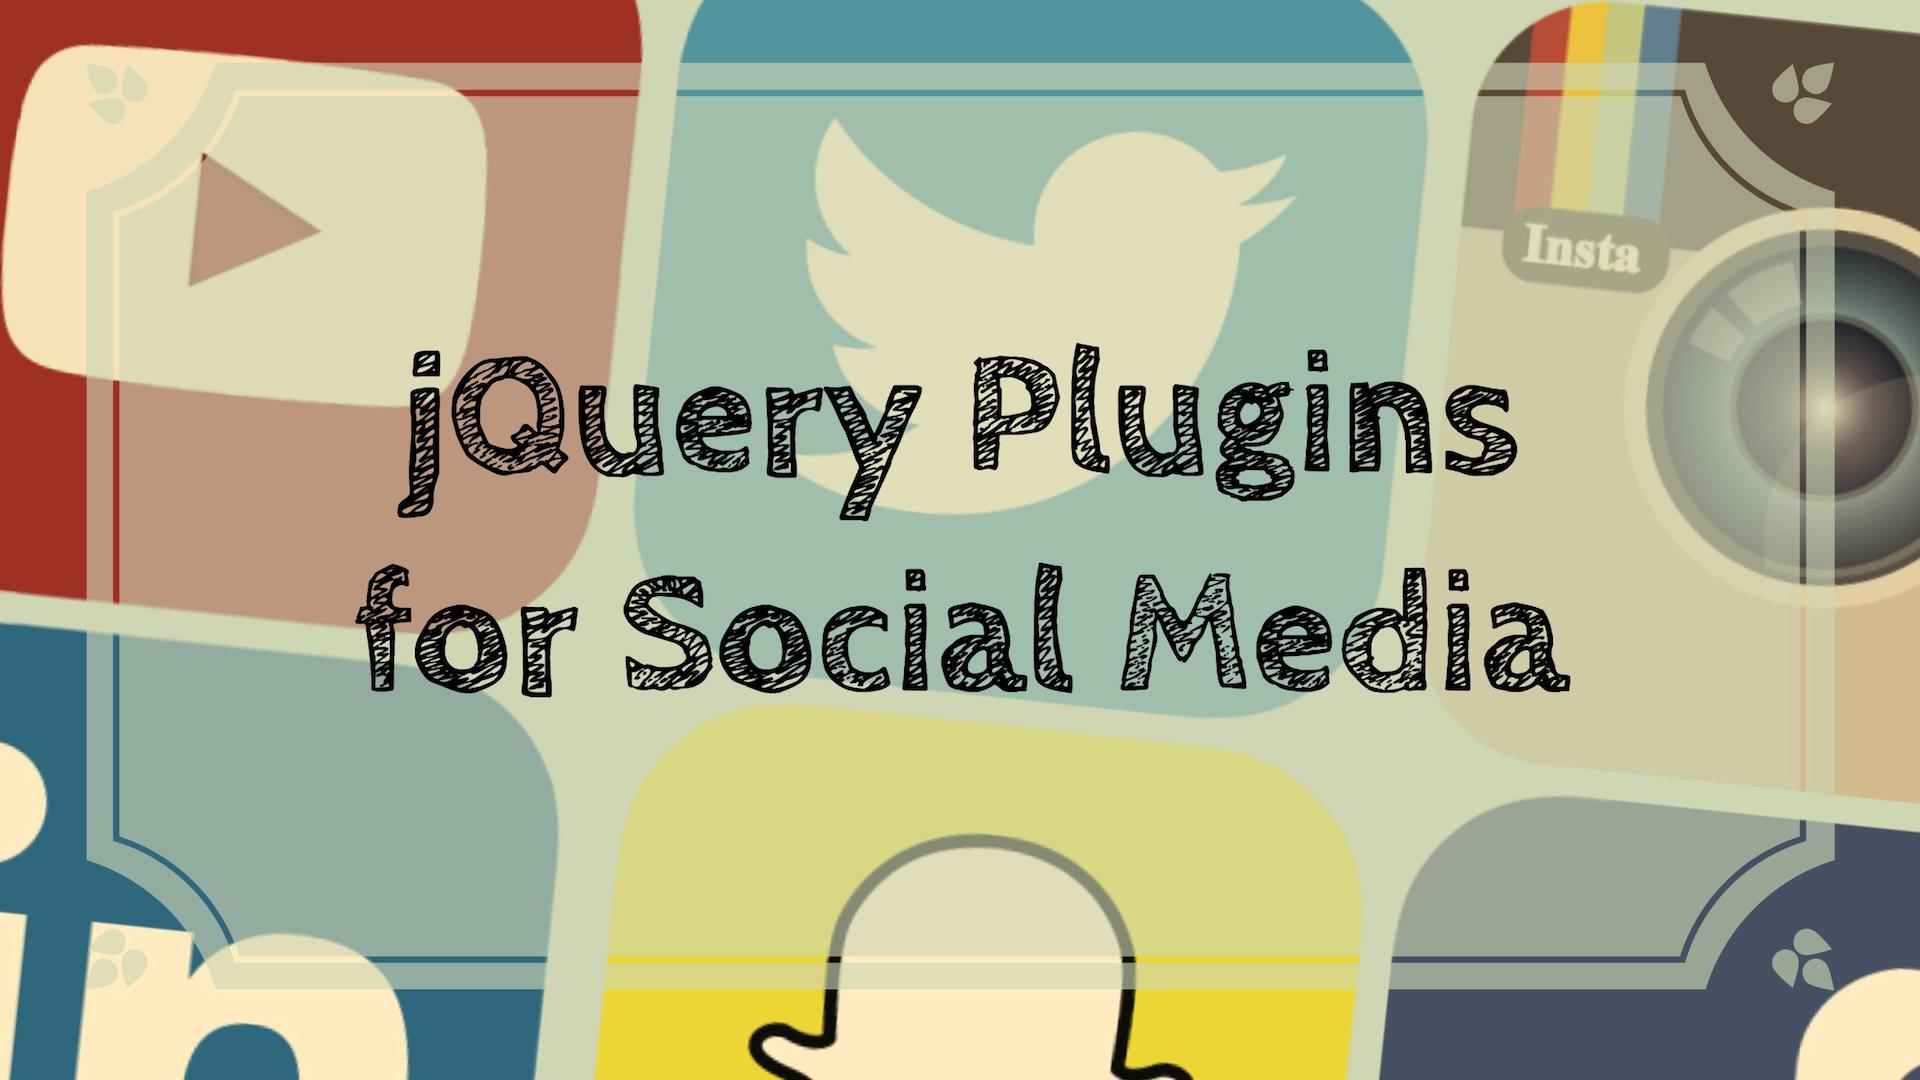 Top 22 JQuery Plugins For Social Media Sharing 2020